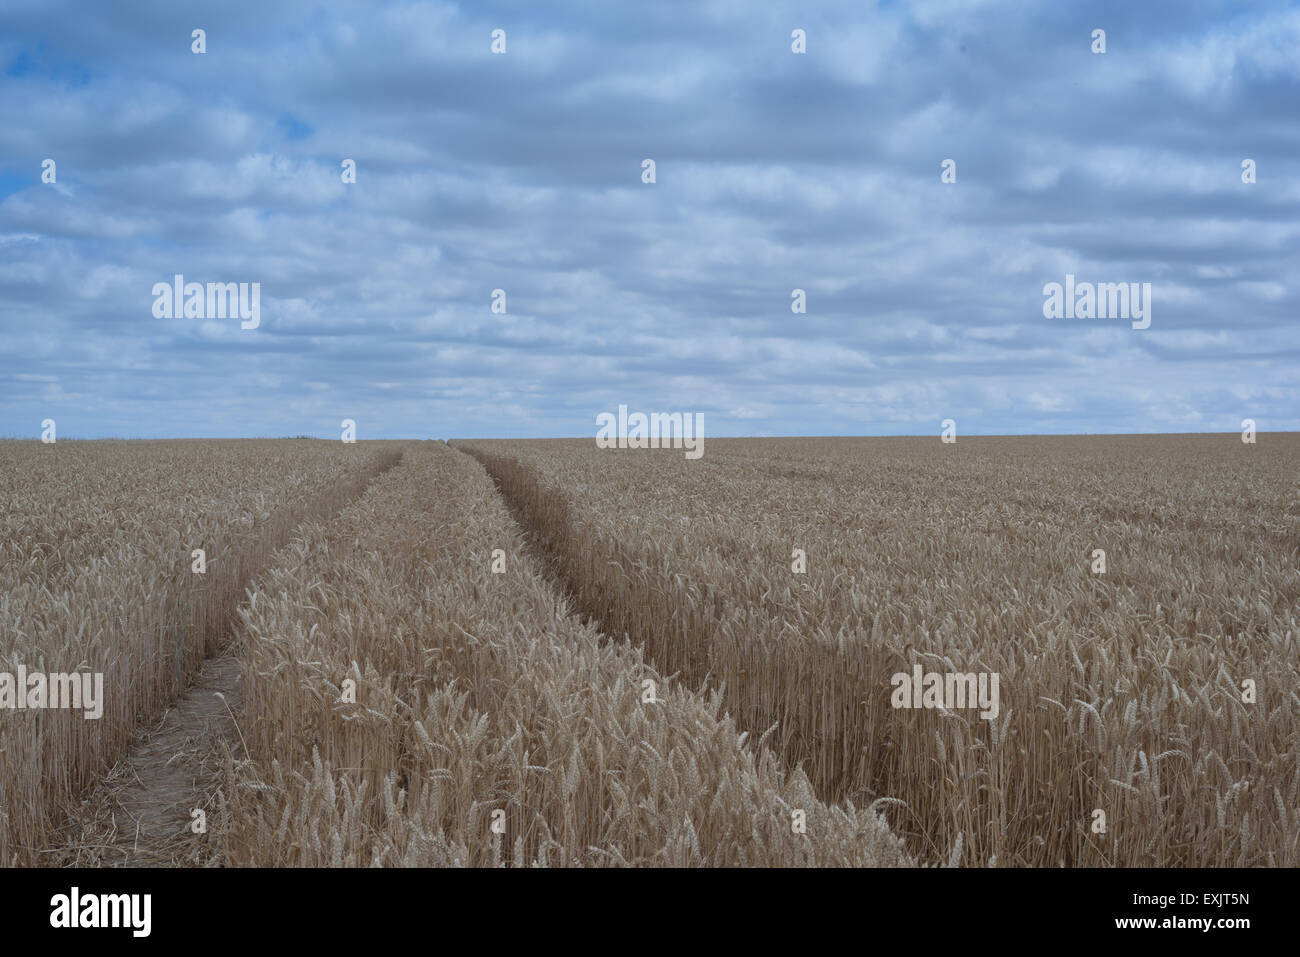 Dry wheat field closeup with nobody with blue cloudy sky - Stock Image